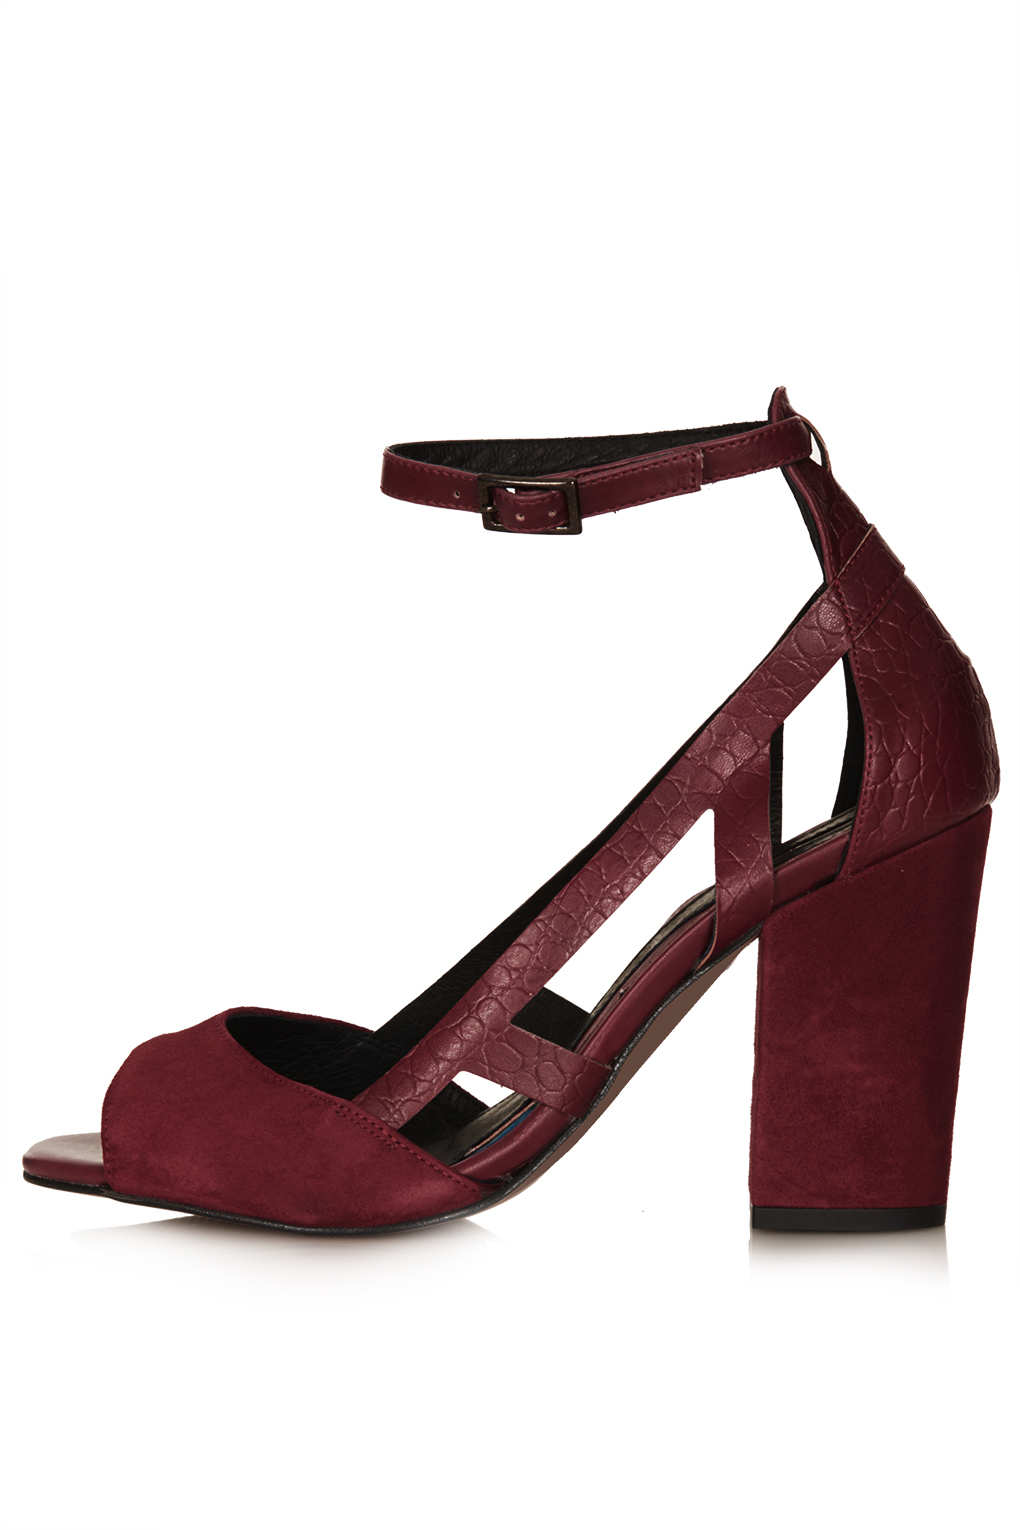 Topshop Goal Block Heel Cut Out Shoes In Red Burgundy Lyst